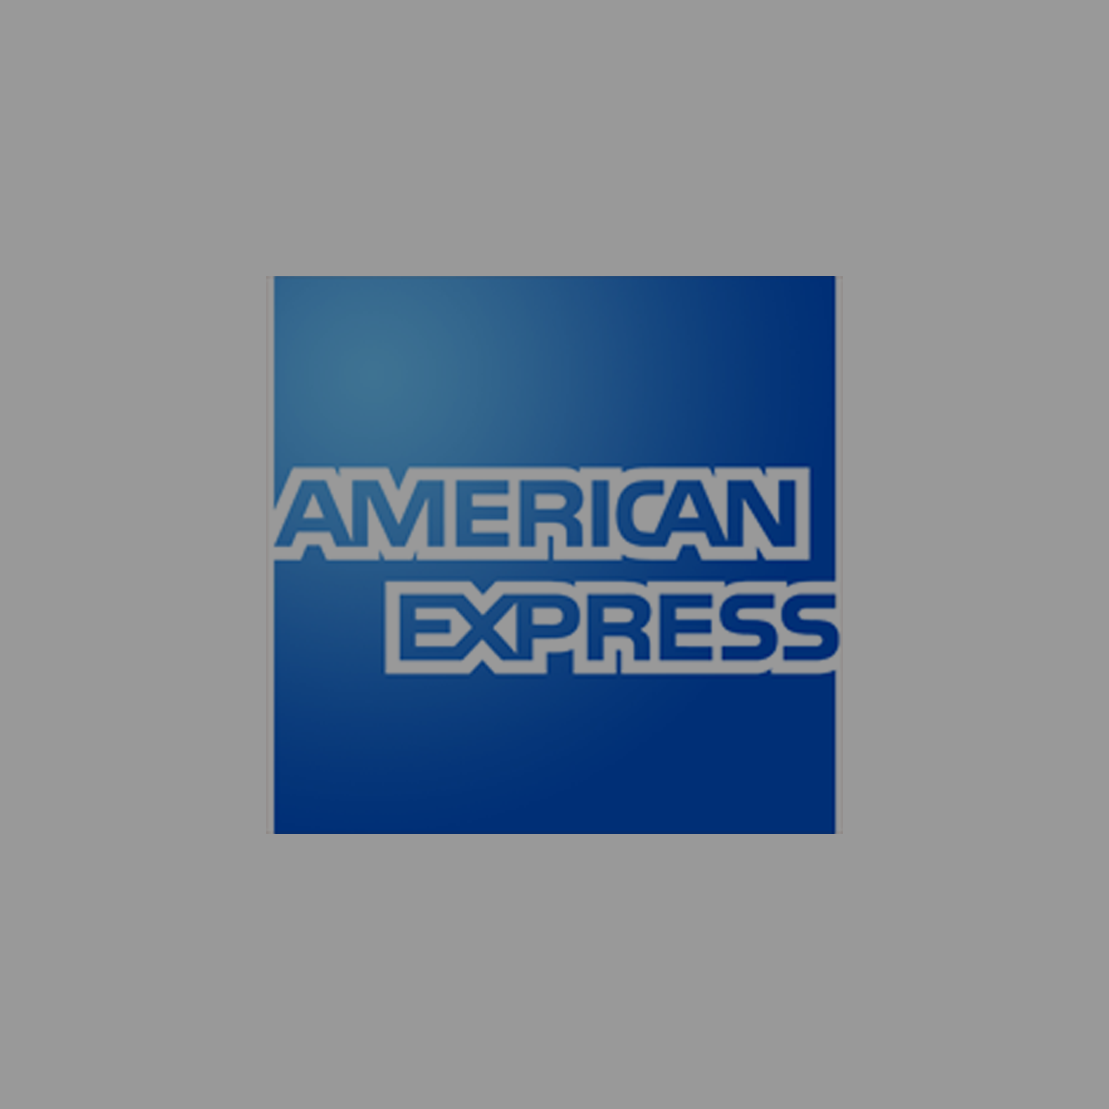 american-express-hover